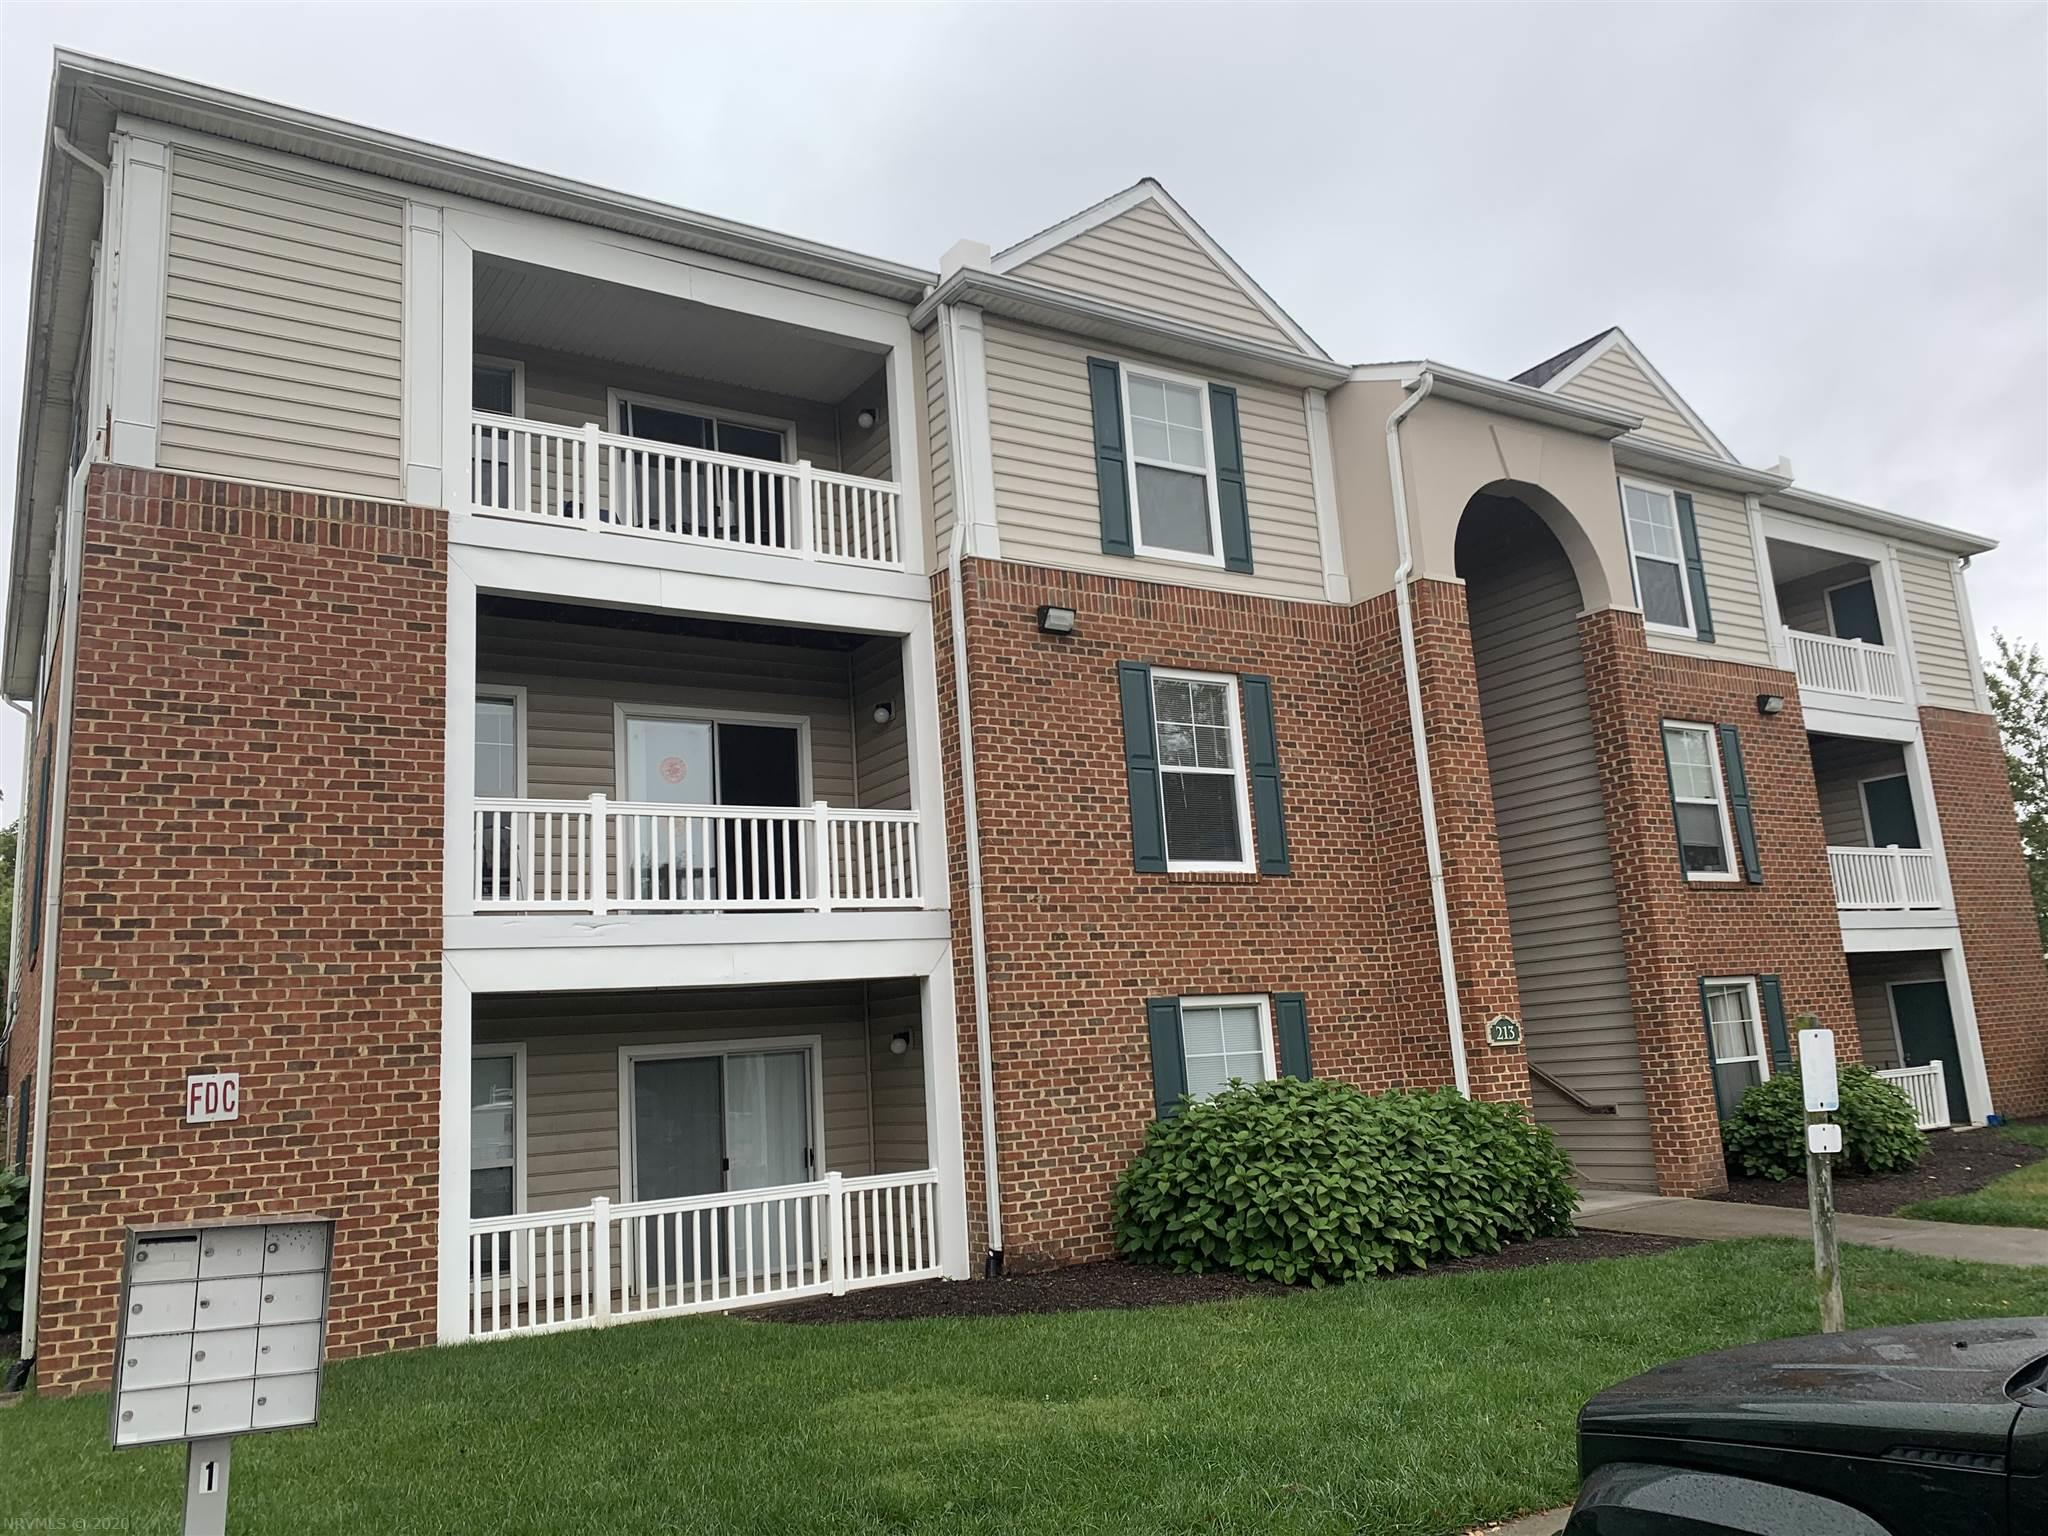 Highly desirable one bedroom one bathroom Knollwood condo in pristine condition being offered for the first time by the original developer. This unit is in very close proximity to the VT Corporate Research Center and across the street from VCOM. This is the opportunity you've been waiting for!  Currently leased through July 2021.